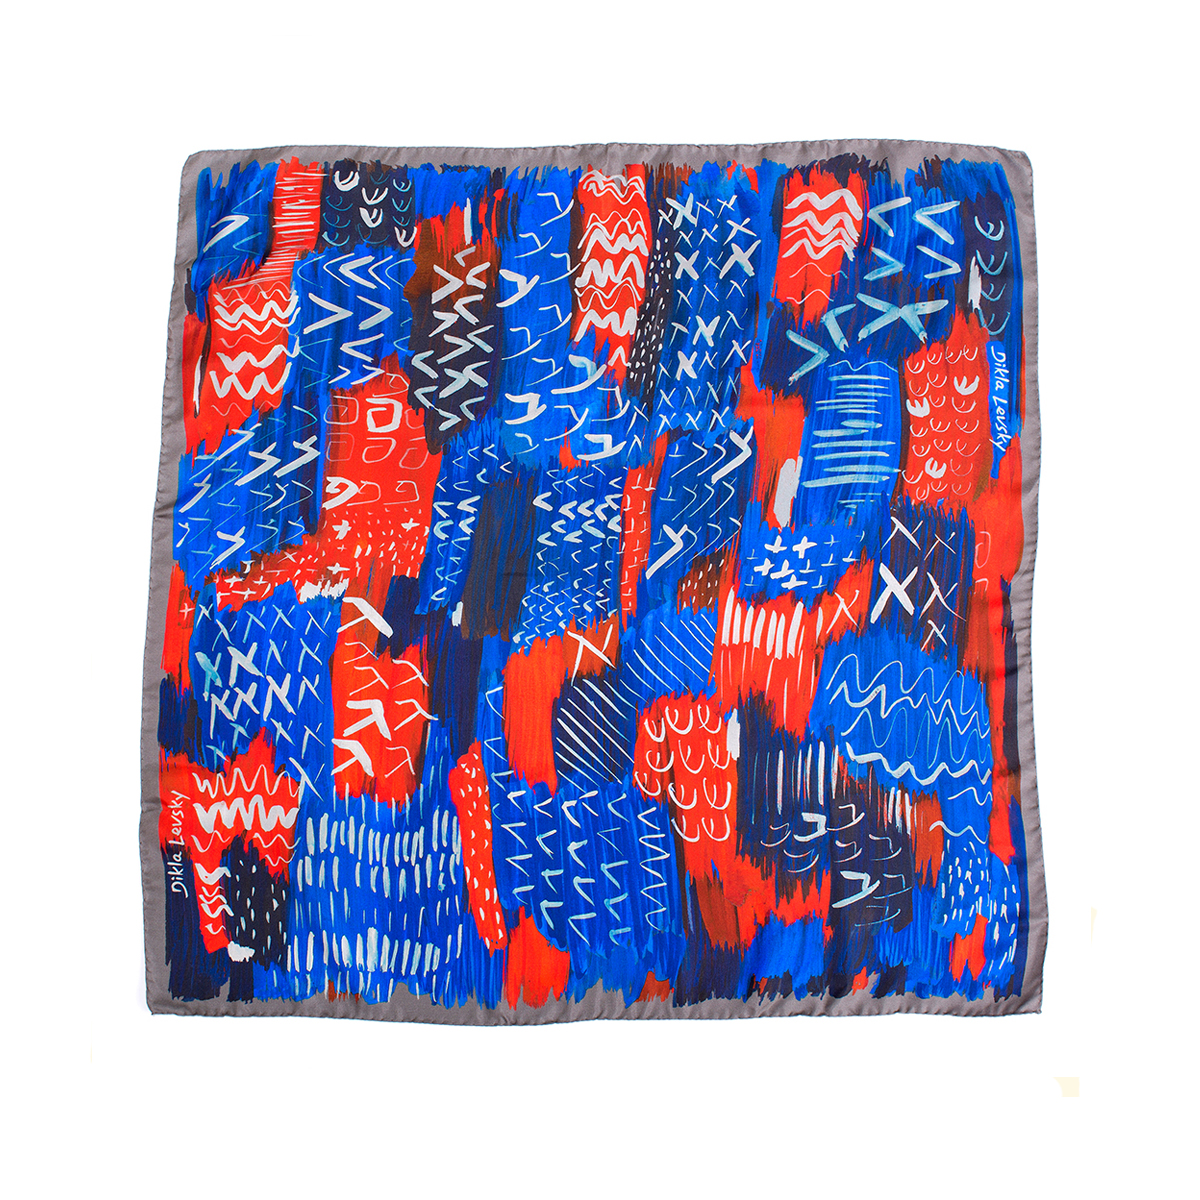 square silk scarf, one of a kind sample, printed ethnic bold scarf by dikla levsky